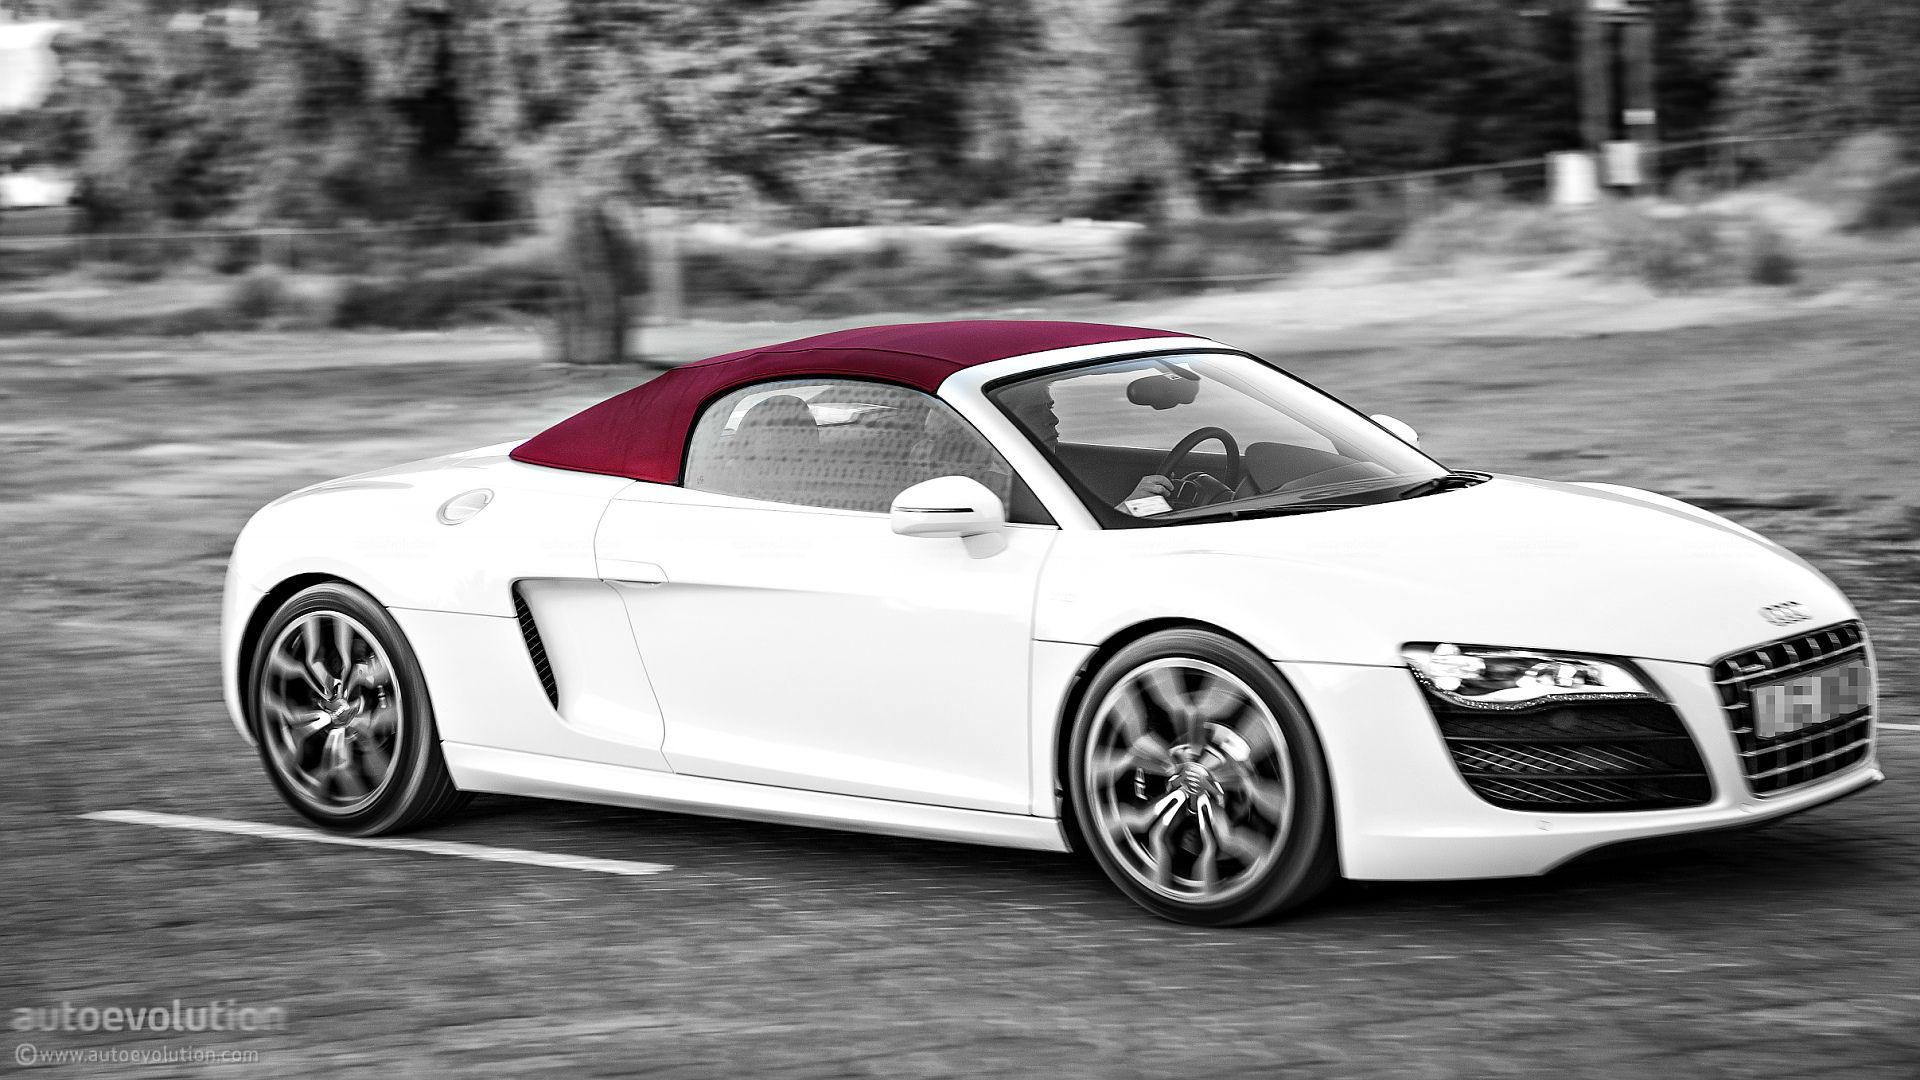 audi r8 cabrio v10 2012 audi pinterest. Black Bedroom Furniture Sets. Home Design Ideas